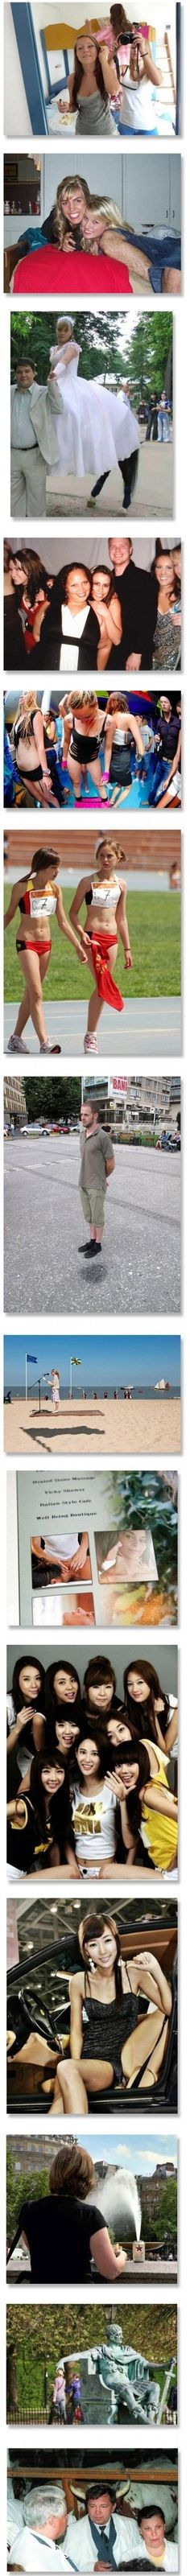 Picture illusions from pictures taken at just the right time making them seem like something they're not.